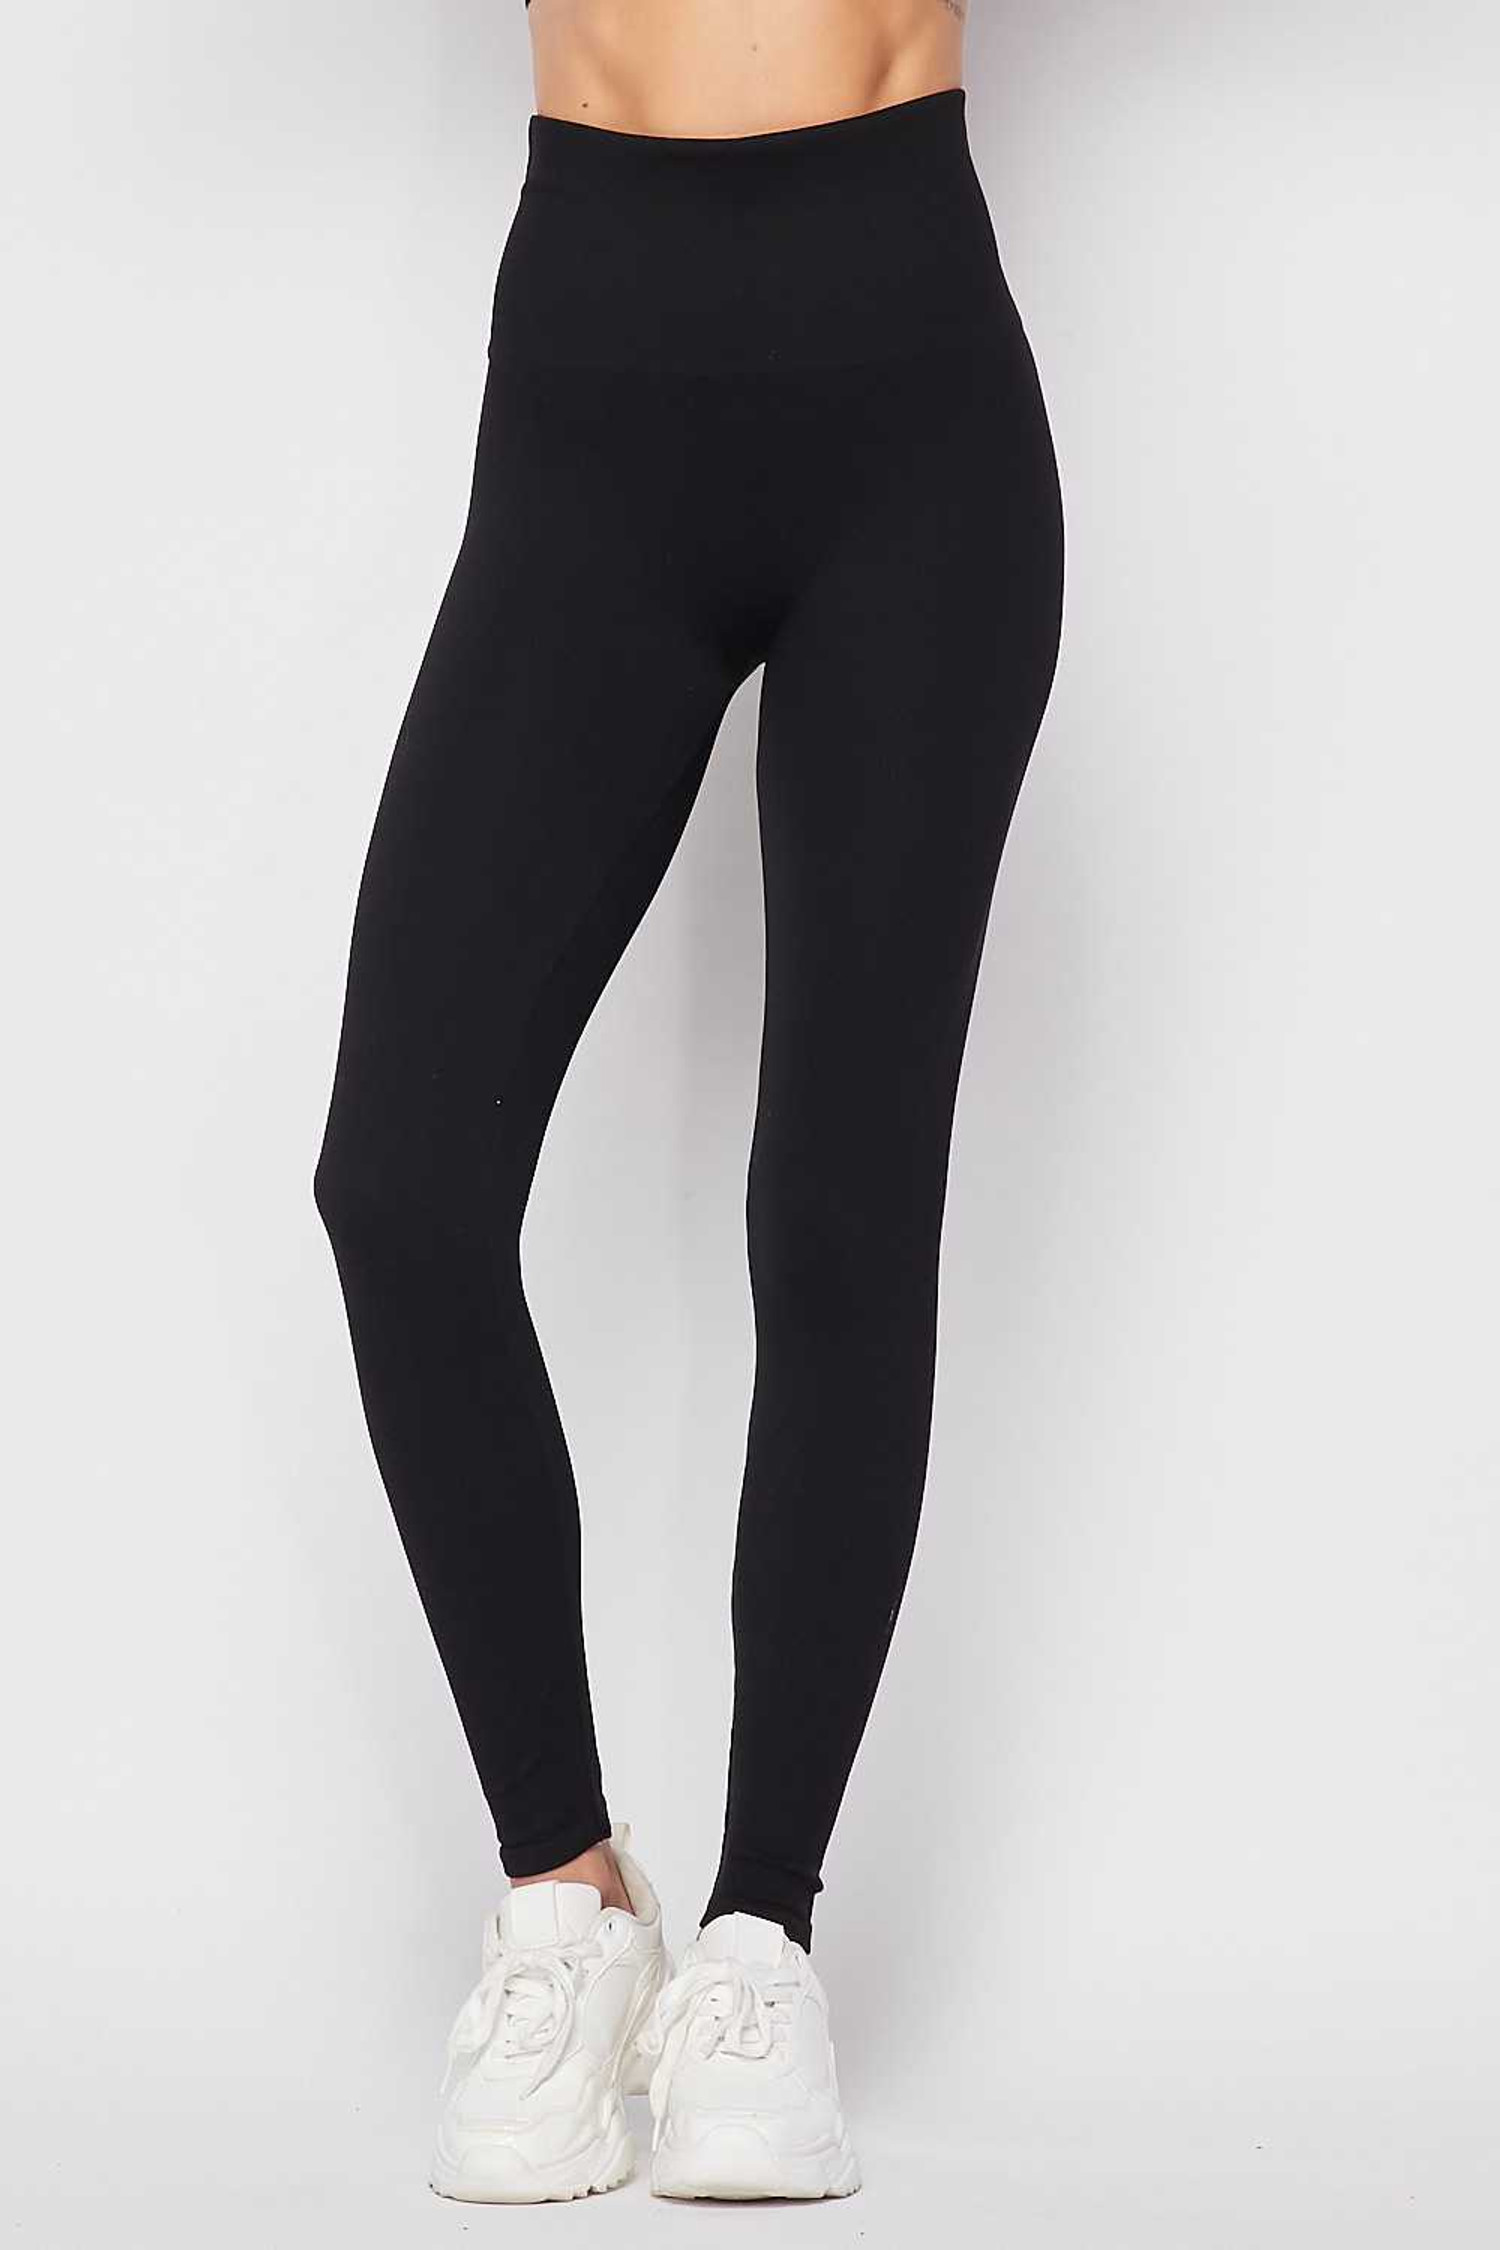 Black Premium Comfort Body Wrapped High Waist Workout Leggings